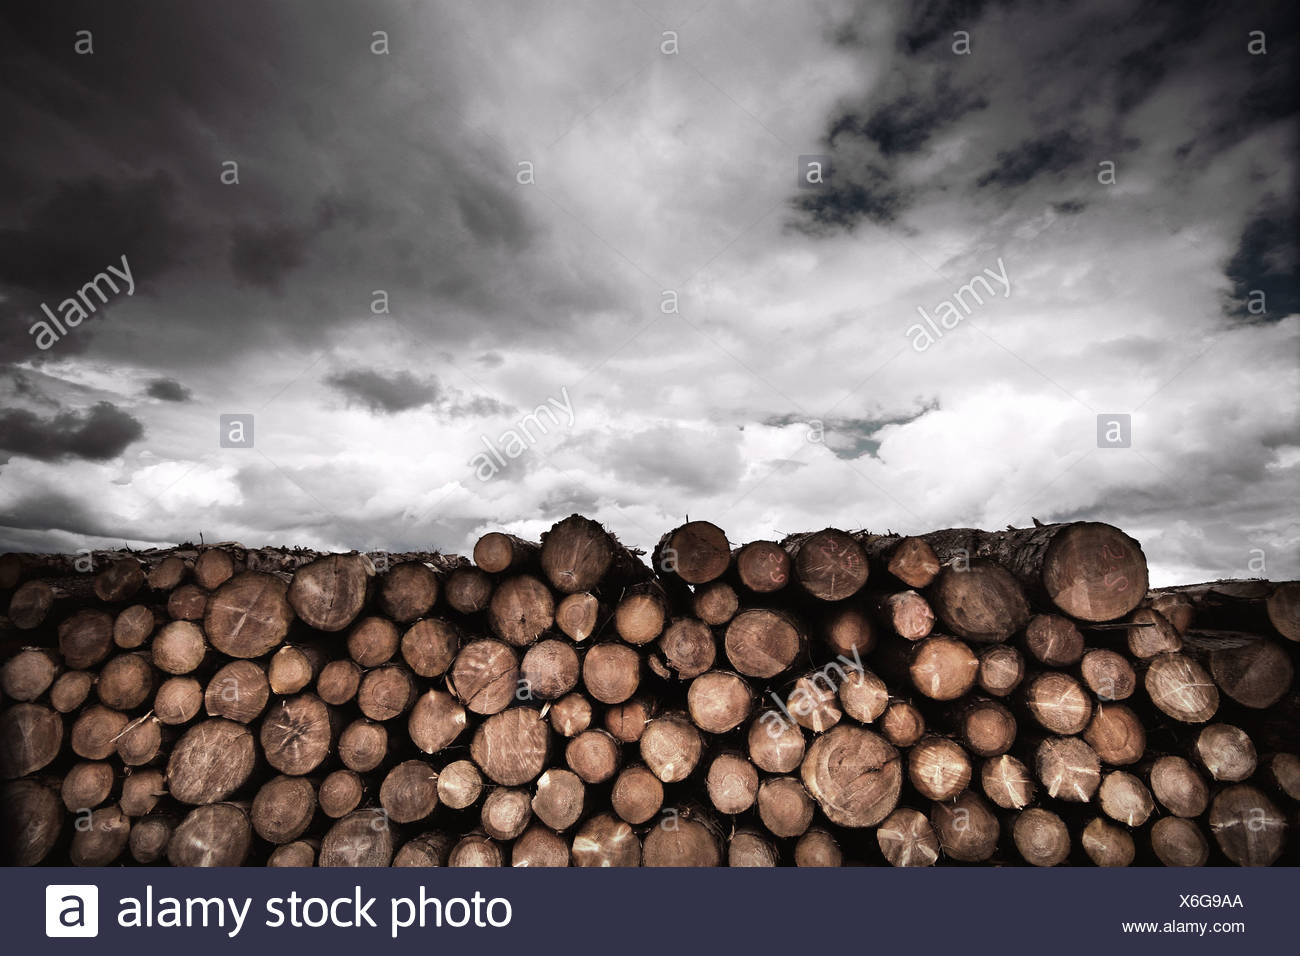 log pile - Stock Image